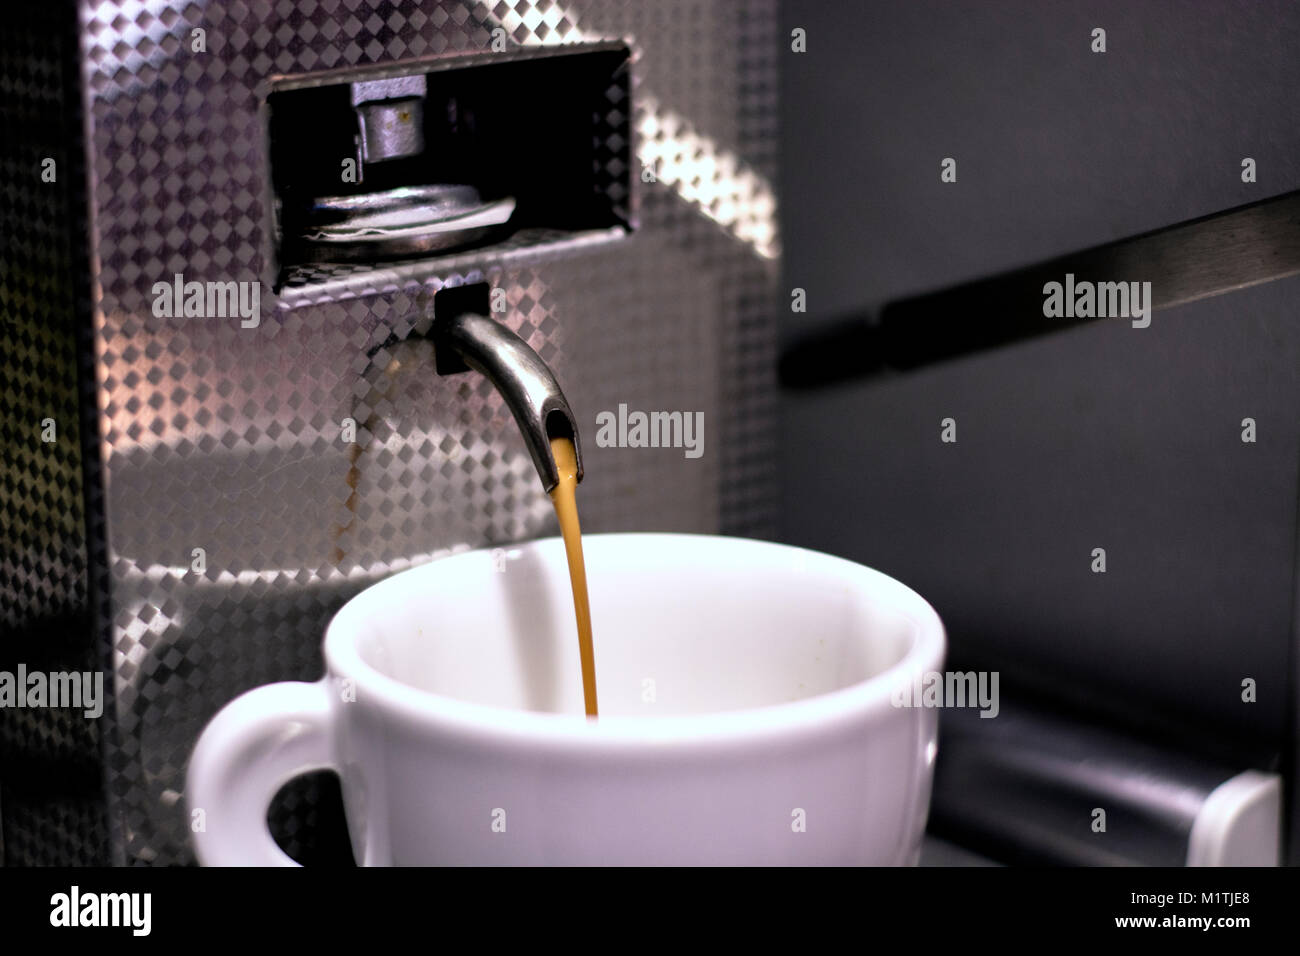 Espresso pouring in coffee cup - Stock Image